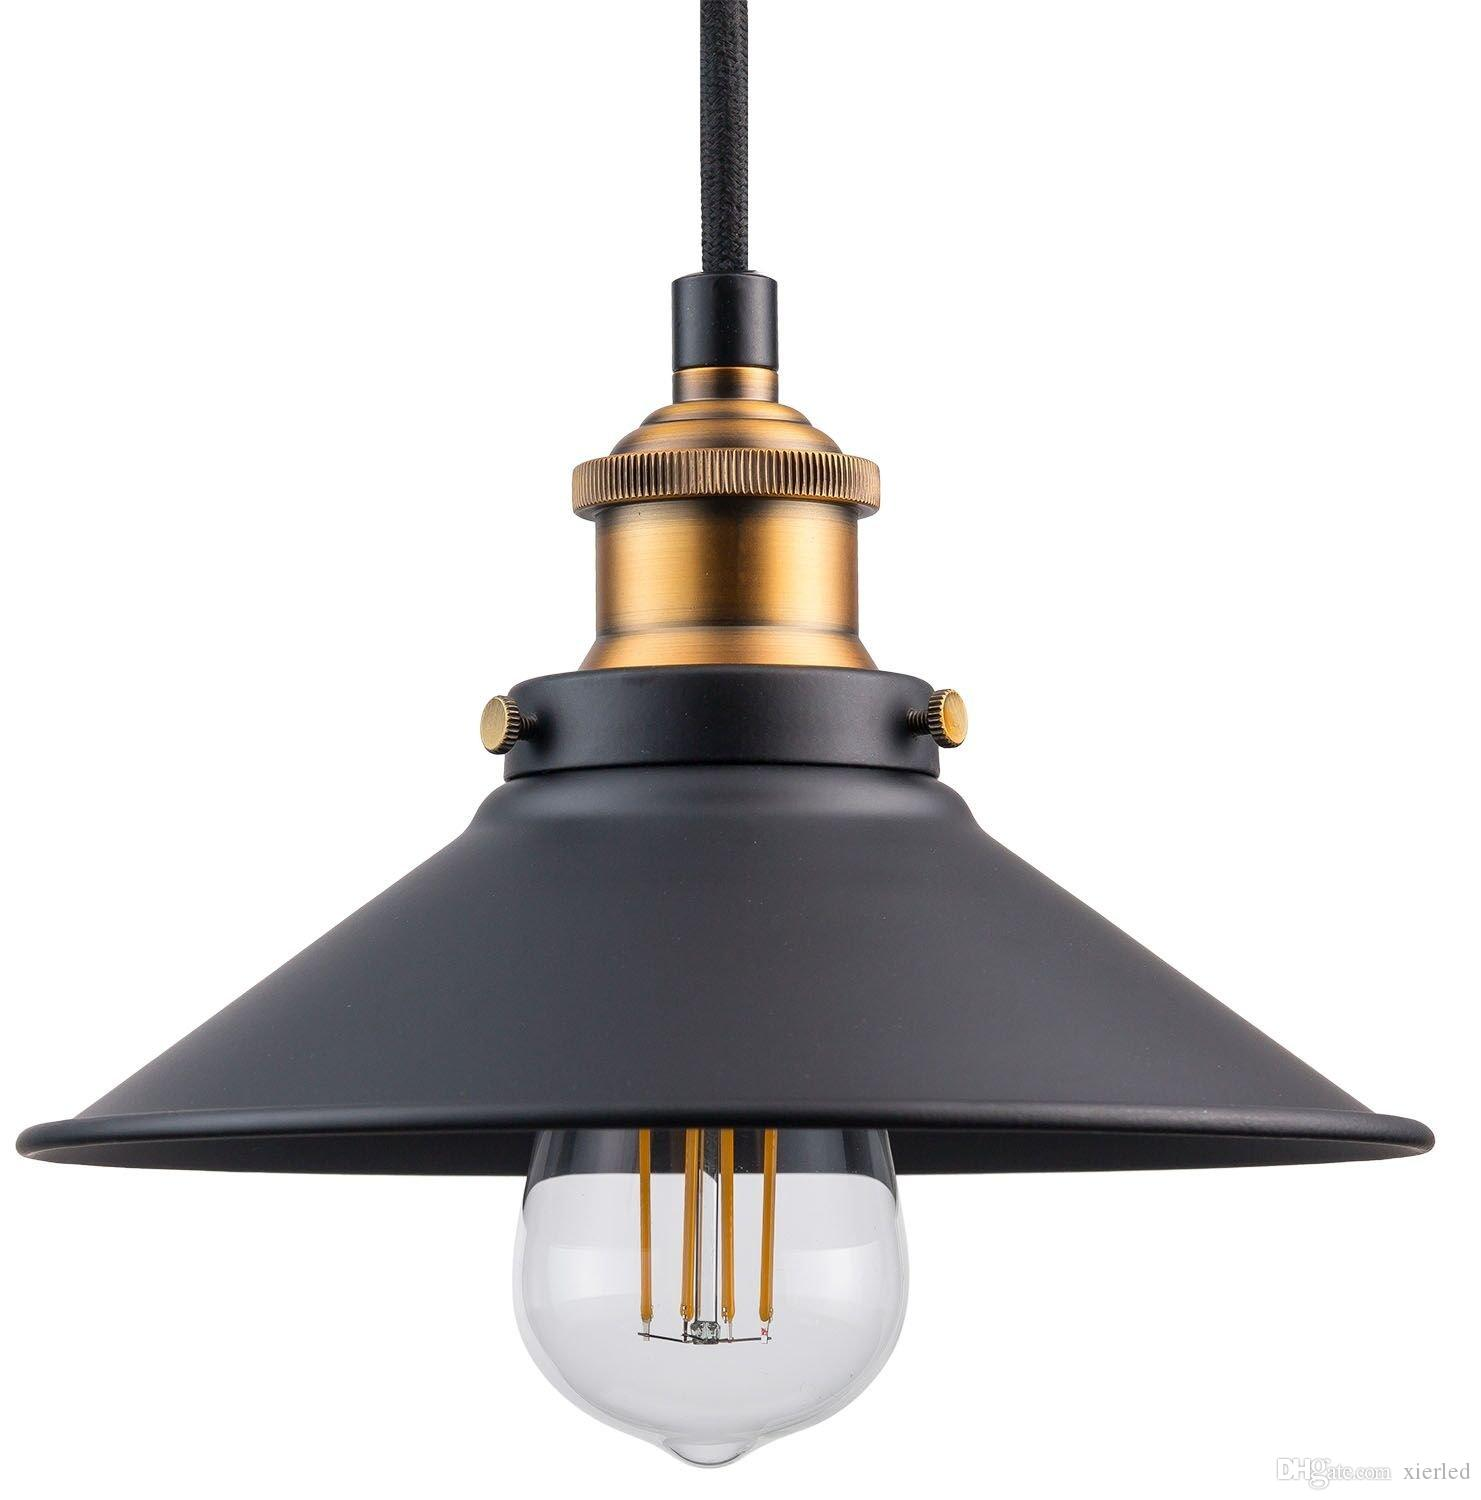 genius commercial table industrial bulb looking light lamp fixtures ceiling lights marvelous pendant most edison lighting